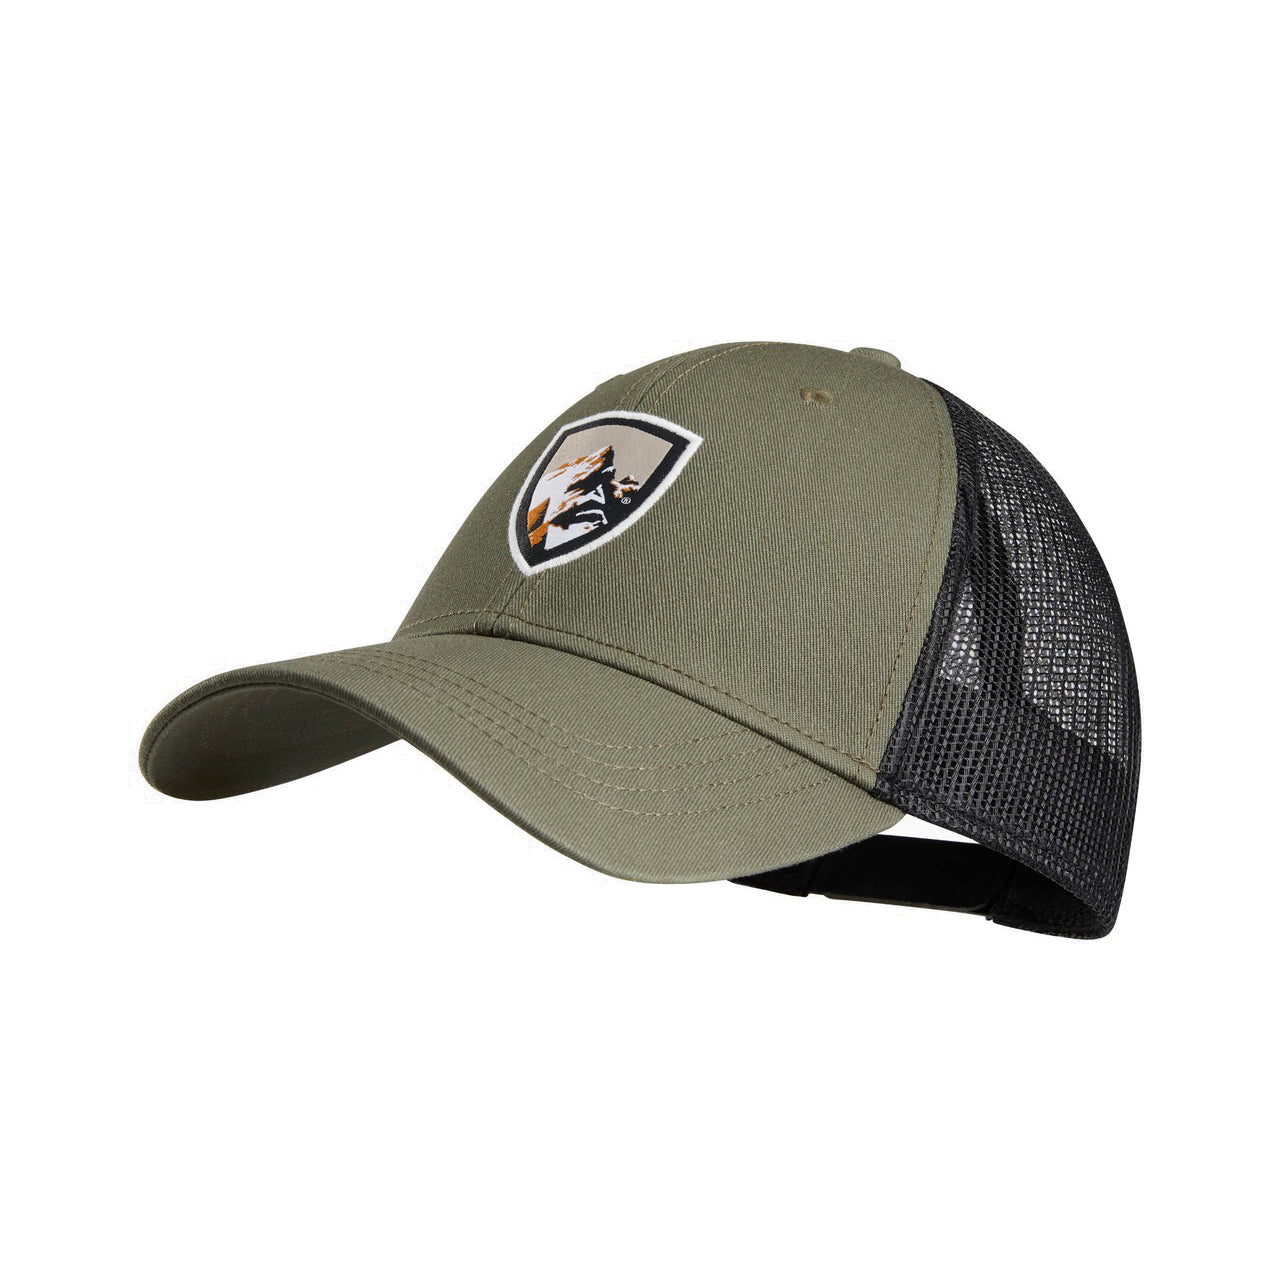 kuhl trucker hat mens three quarter view in color green with kuhl logo and mesh back